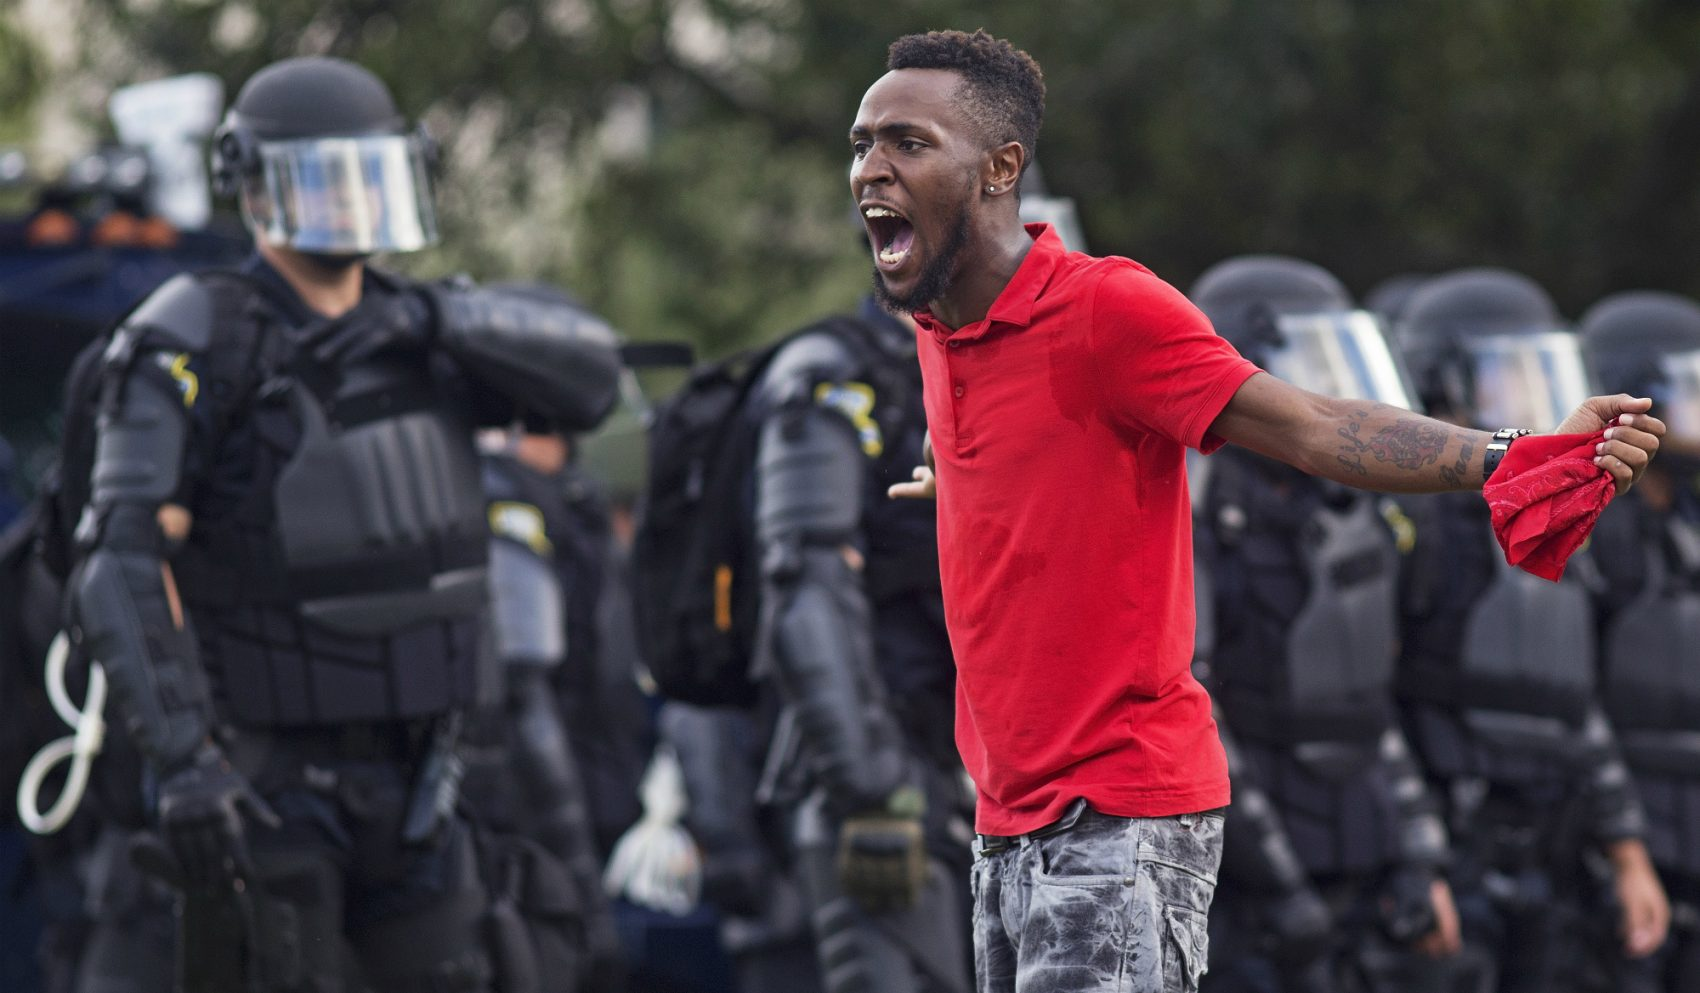 A protester yells at police in front of the Baton Rouge Police Department headquarters after police arrived in riot gear to clear protesters from the street in Baton Rouge, La., Saturday, July 9, 2016. Several protesters were arrested. (Max Becherer/AP)